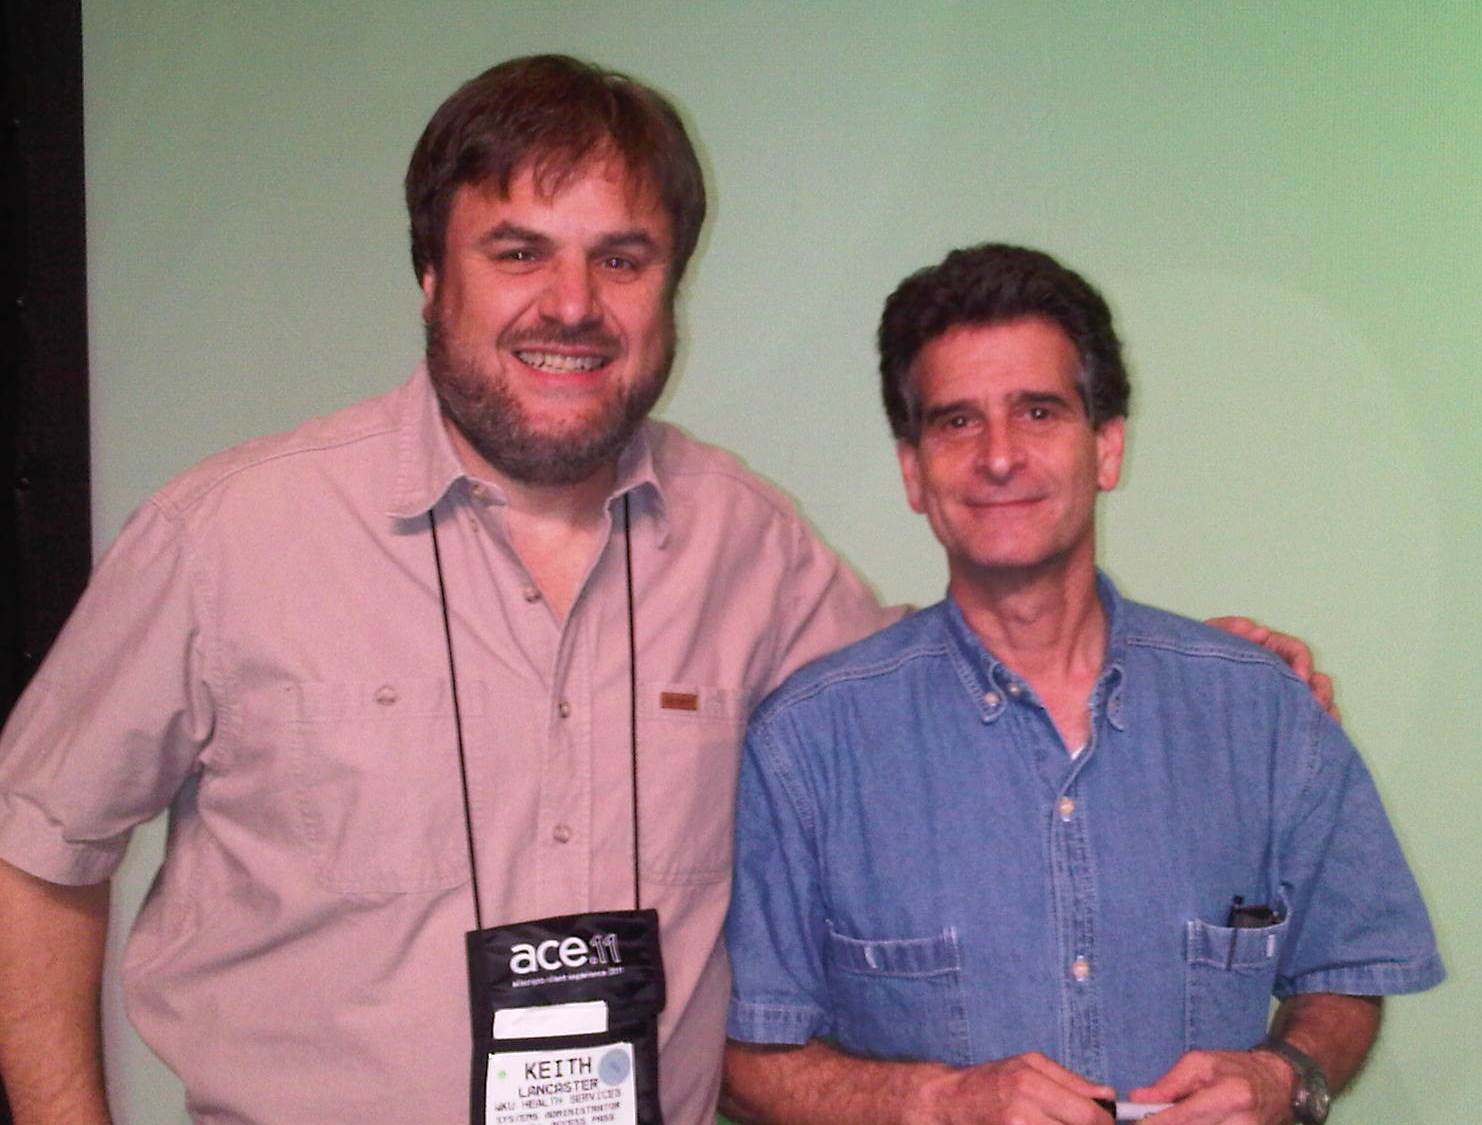 Keith Lancaster with Dean Kamen